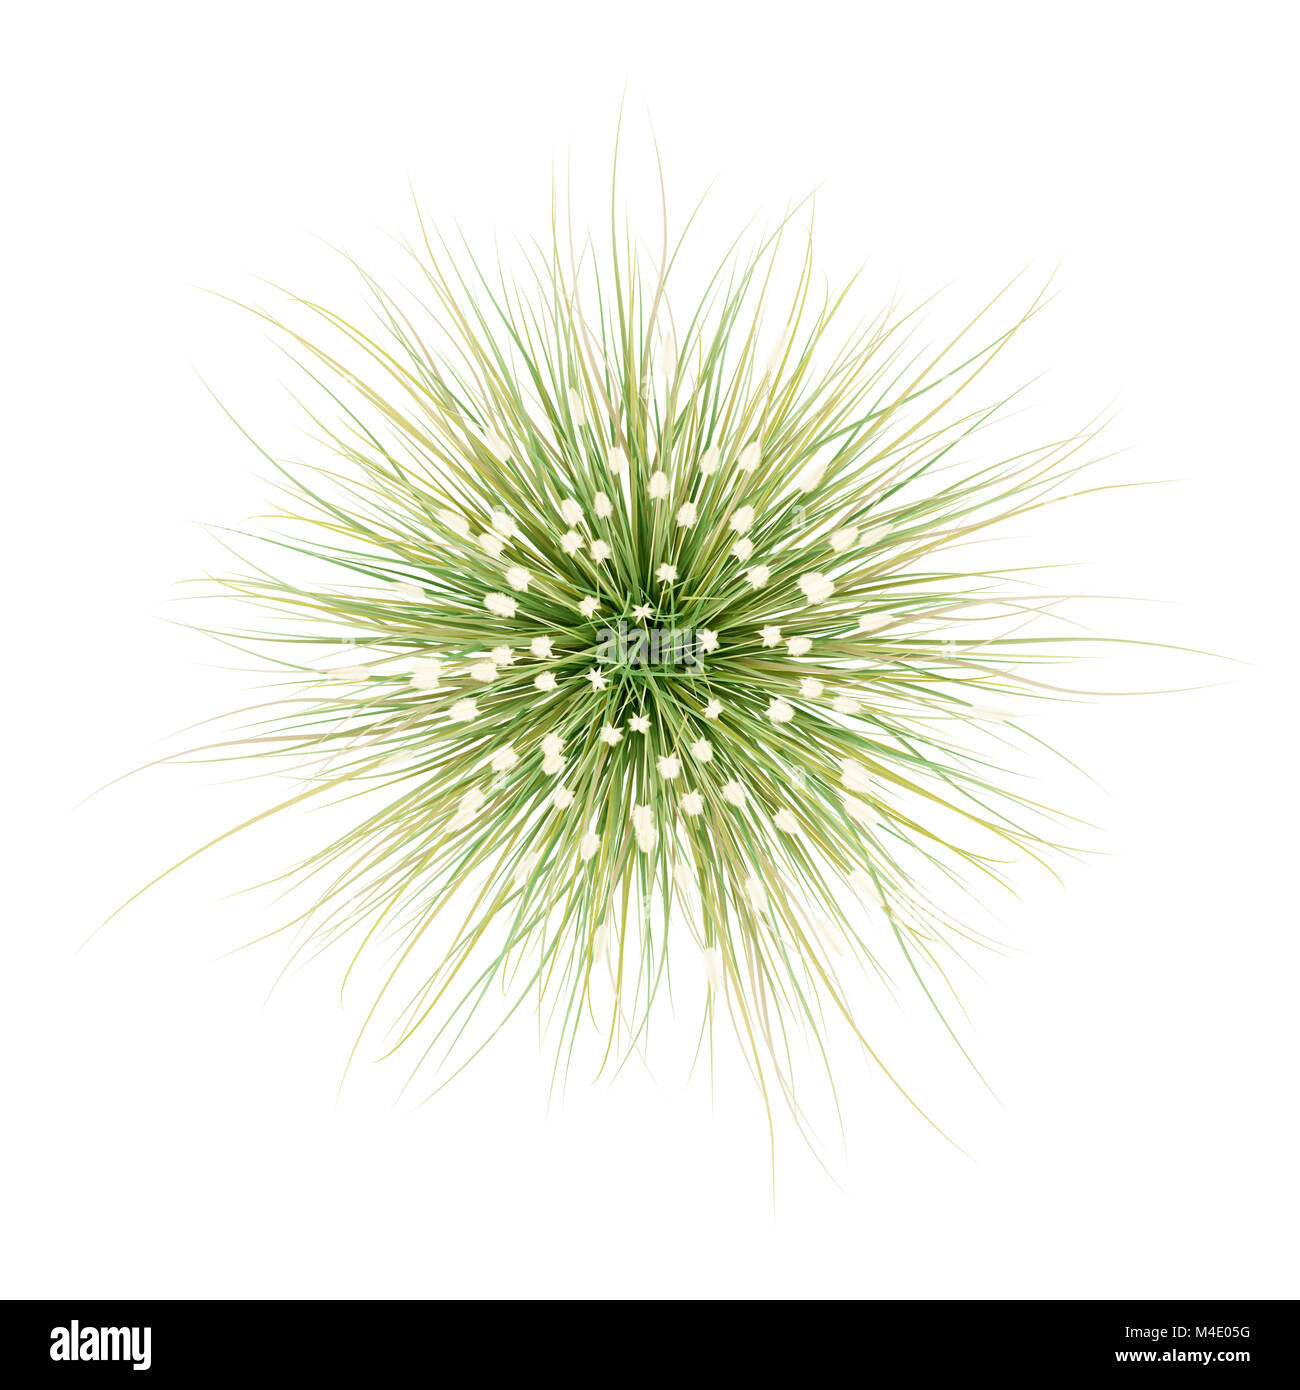 Top View Of Ornamental Grass Plant Isolated On White Background Stock Photo Alamy